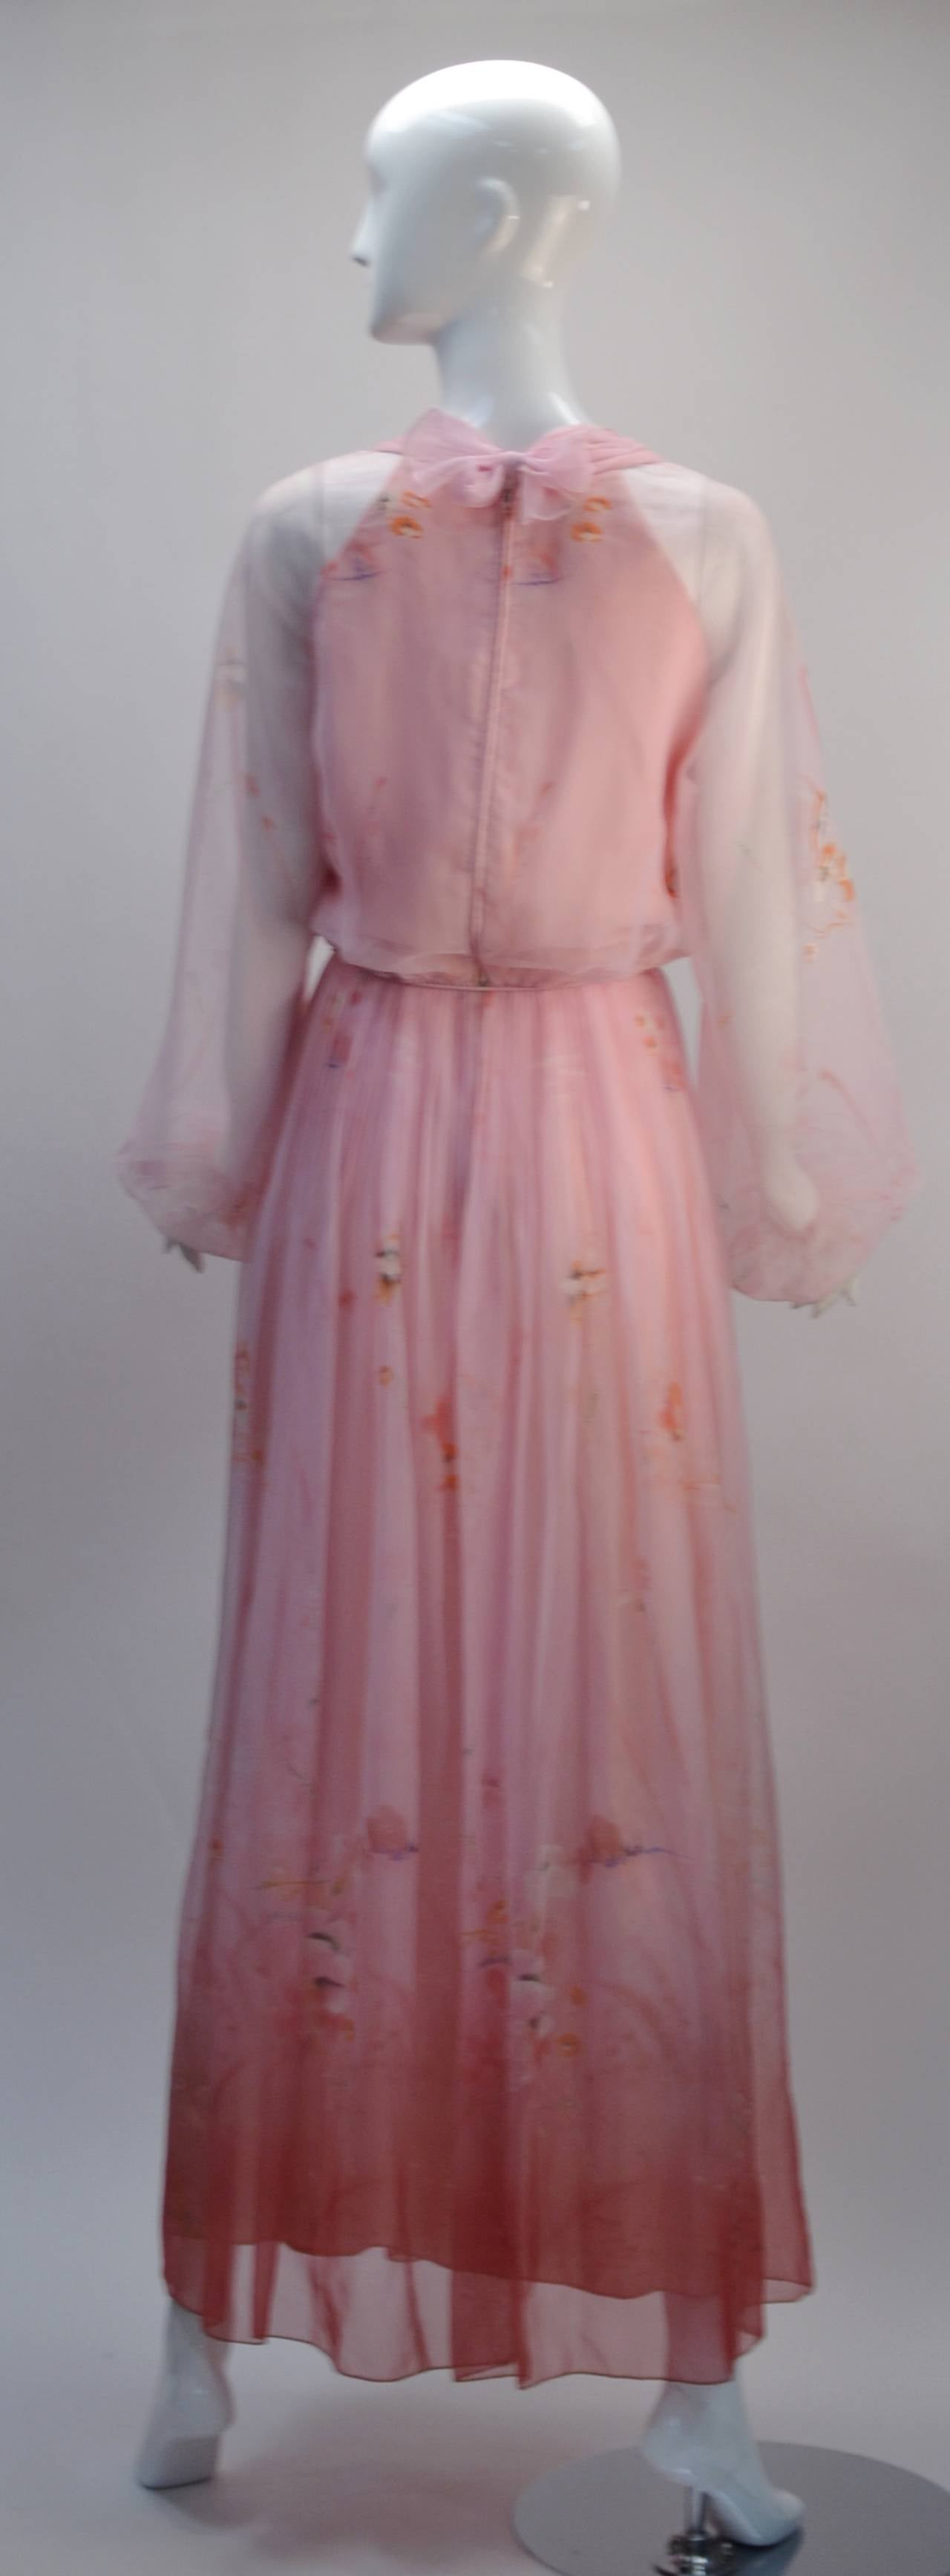 Sheer light pink fabric is pleated at the waist line as color intensifies at the hem creating an ombre effect. Sweet tie at waist. Layers of fabric create a halter look under the sheer pink fabric. Perfectly long sleeves are sheer and cool. Tiny